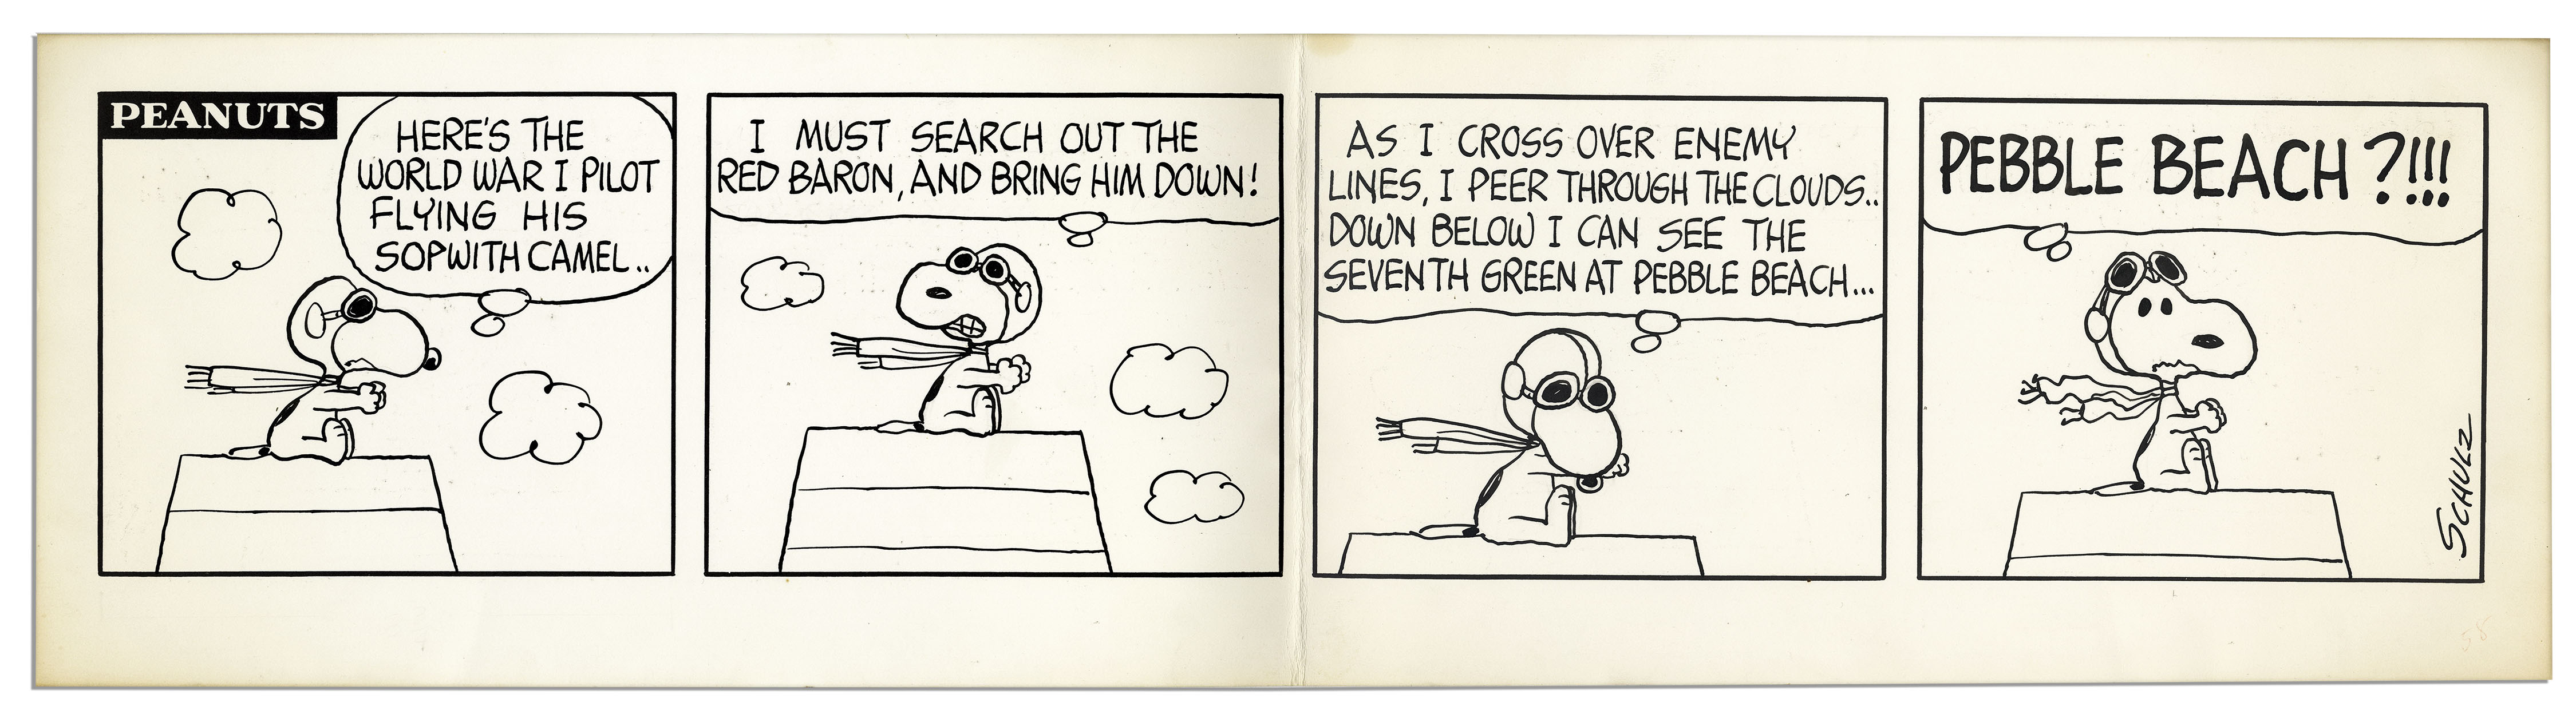 SNOOPY HERE/'S THE WORLD WAR 1 FLYING ACE IN HIS SOPWITH CAMEL